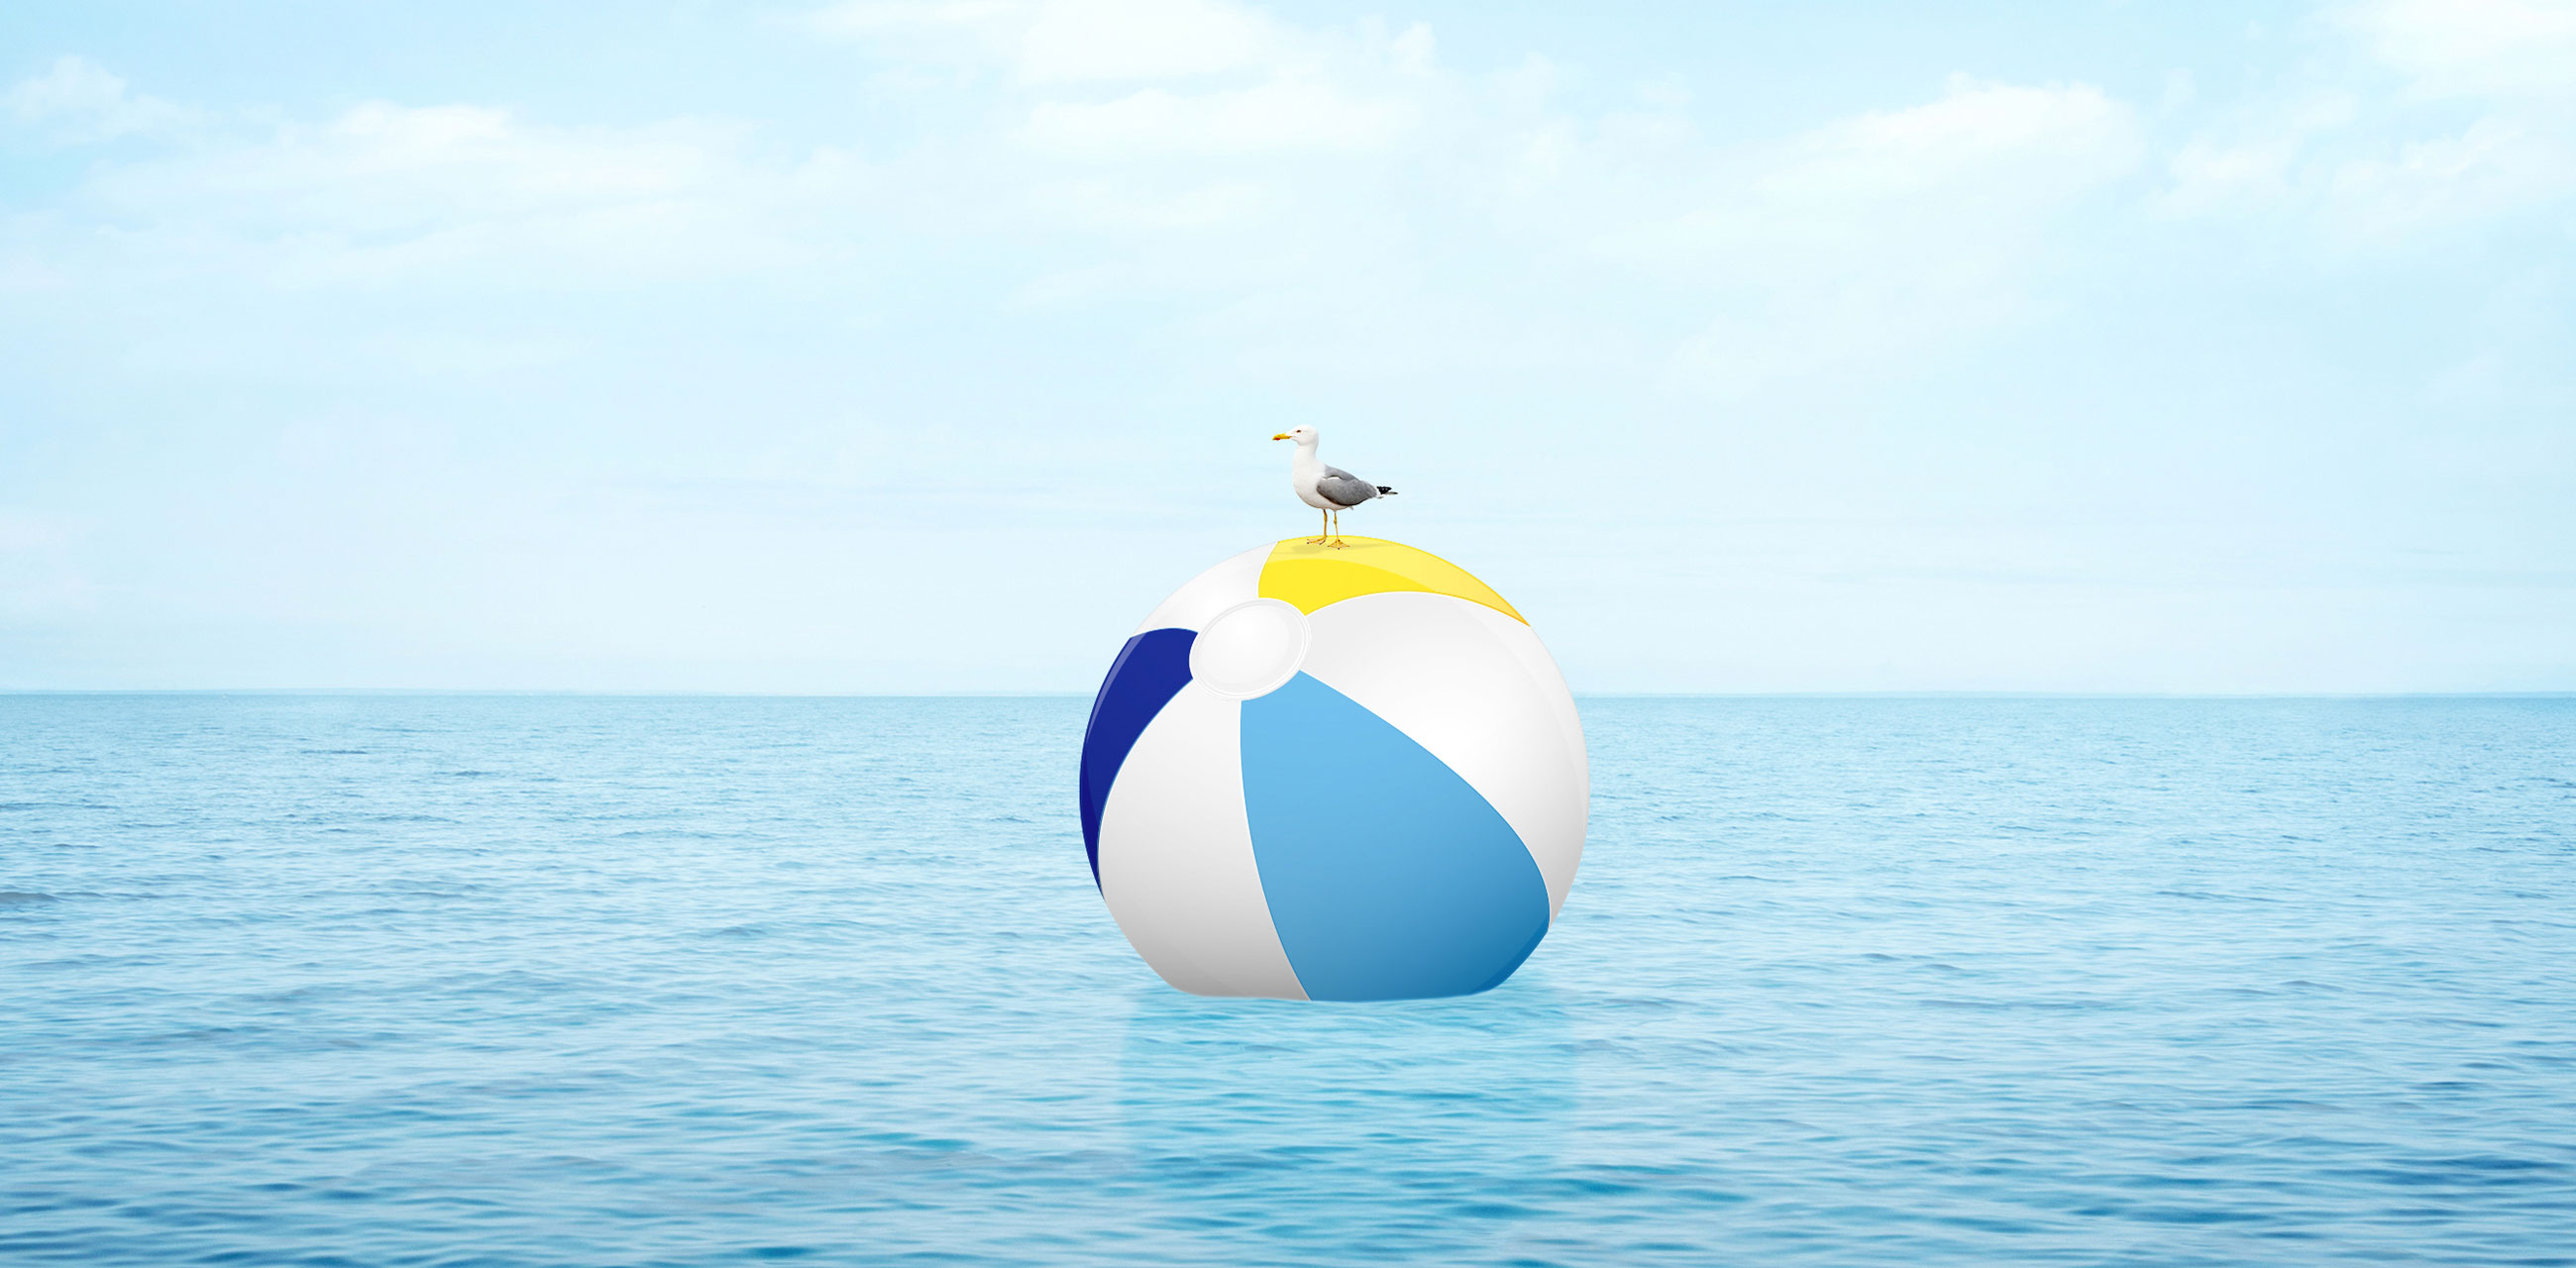 Seagull on beach ball